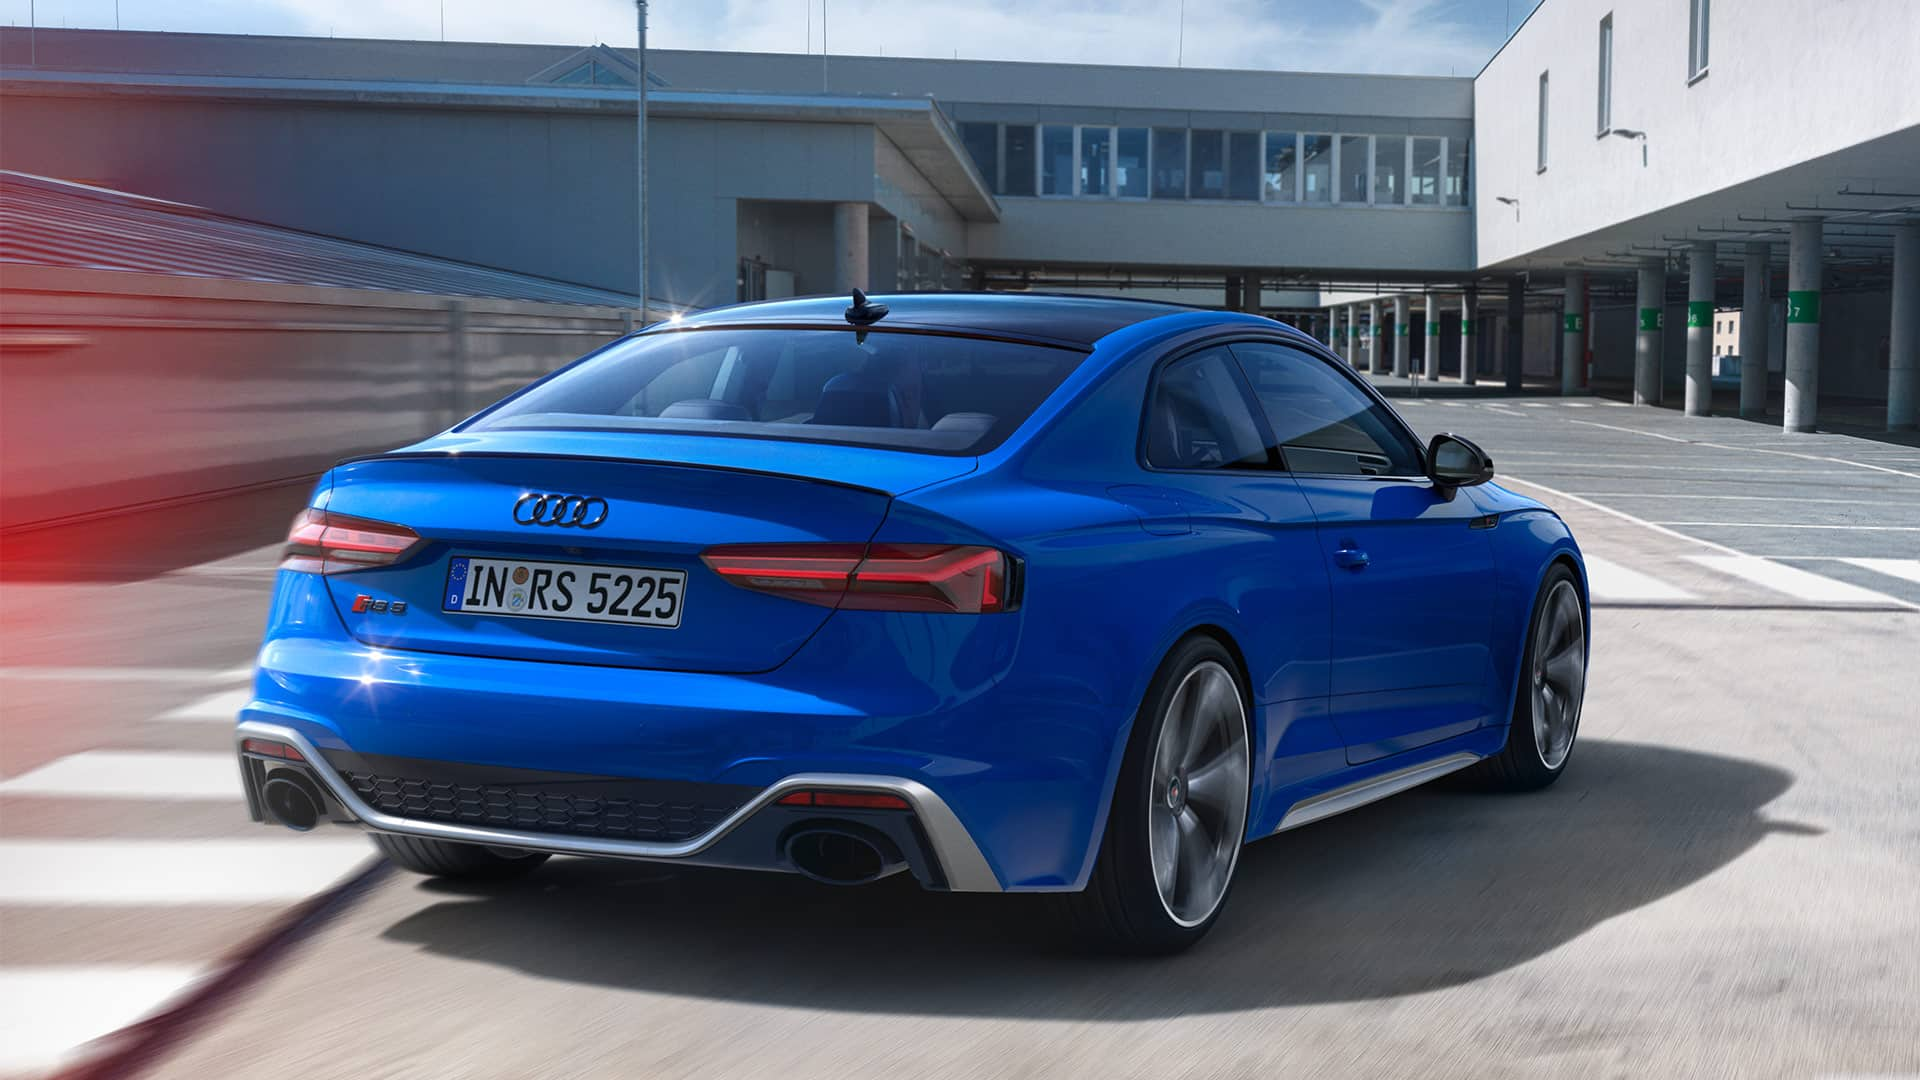 Heckansicht Audi RS 5 Coupé 25 years